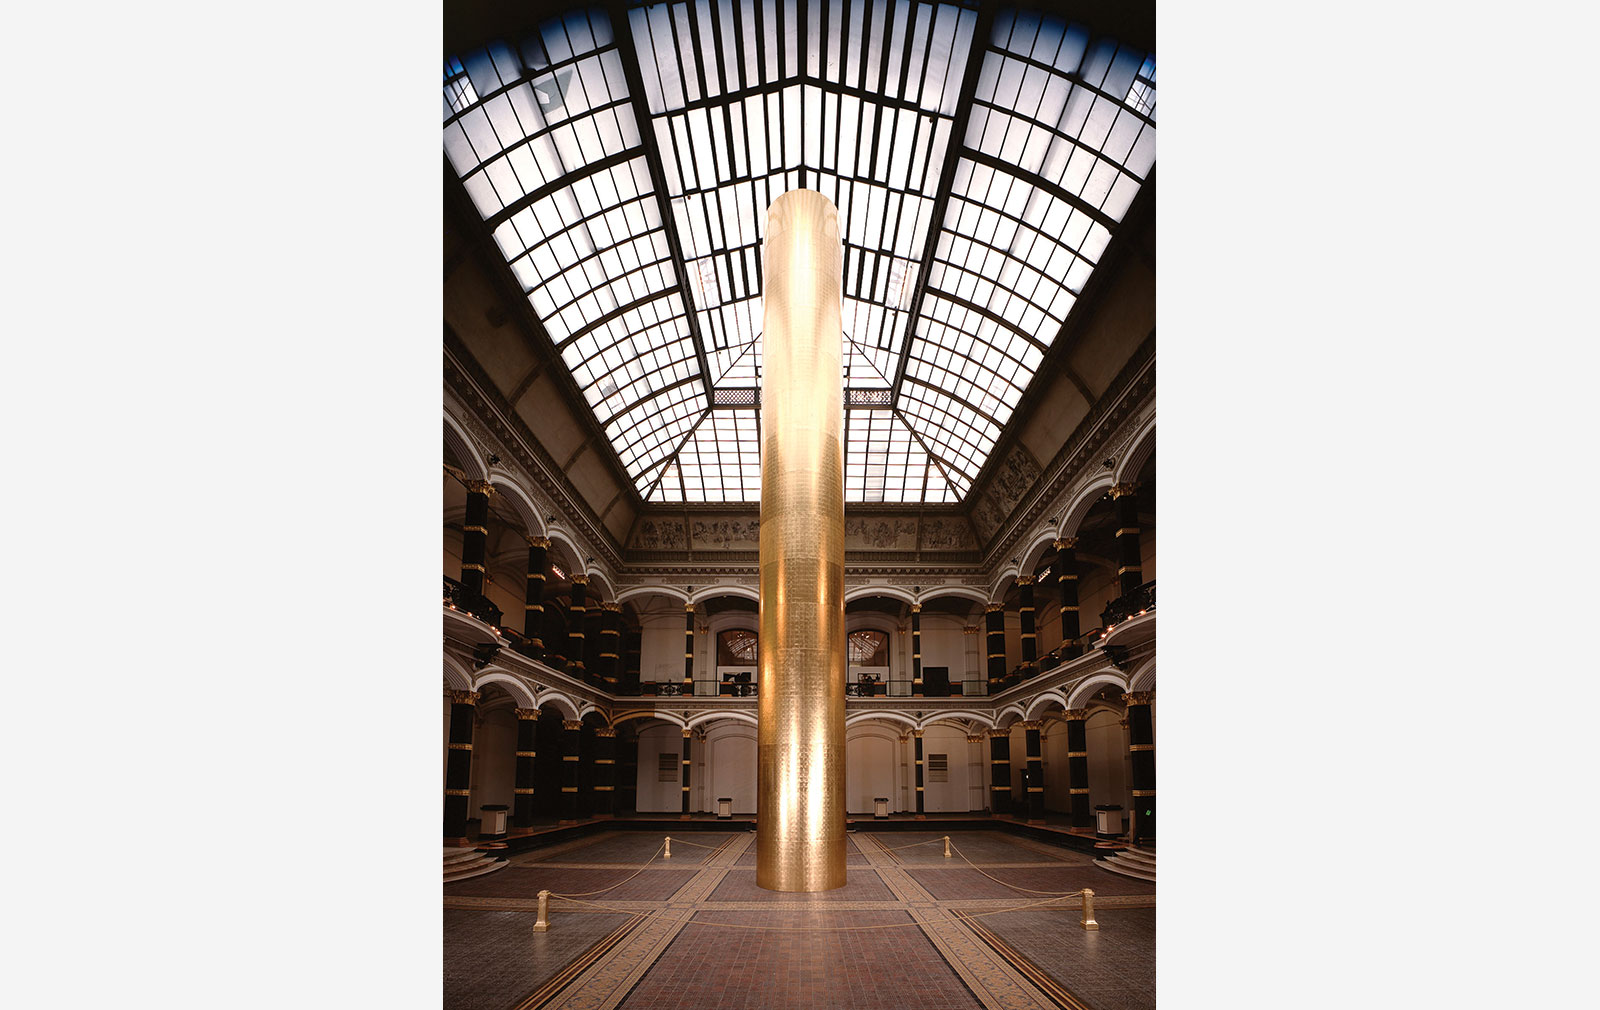 Venice Biennale preview, featuring The Golden Tower by James Lee Byars